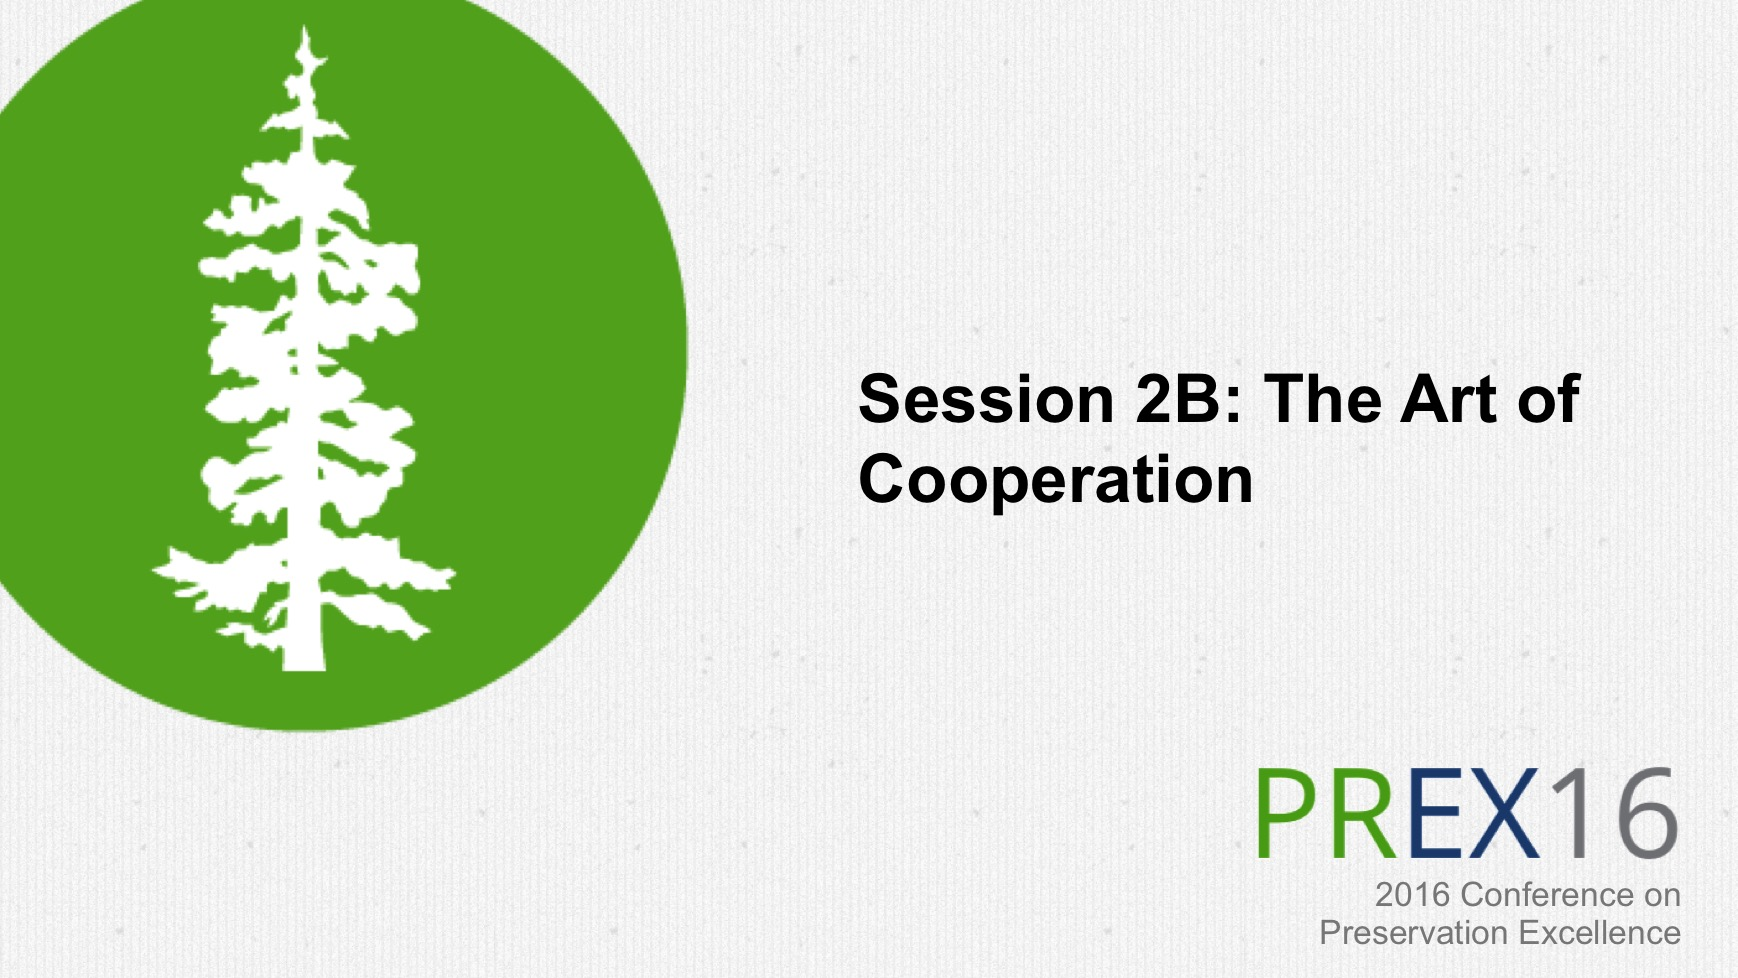 Session 2B: The Art of Cooperation